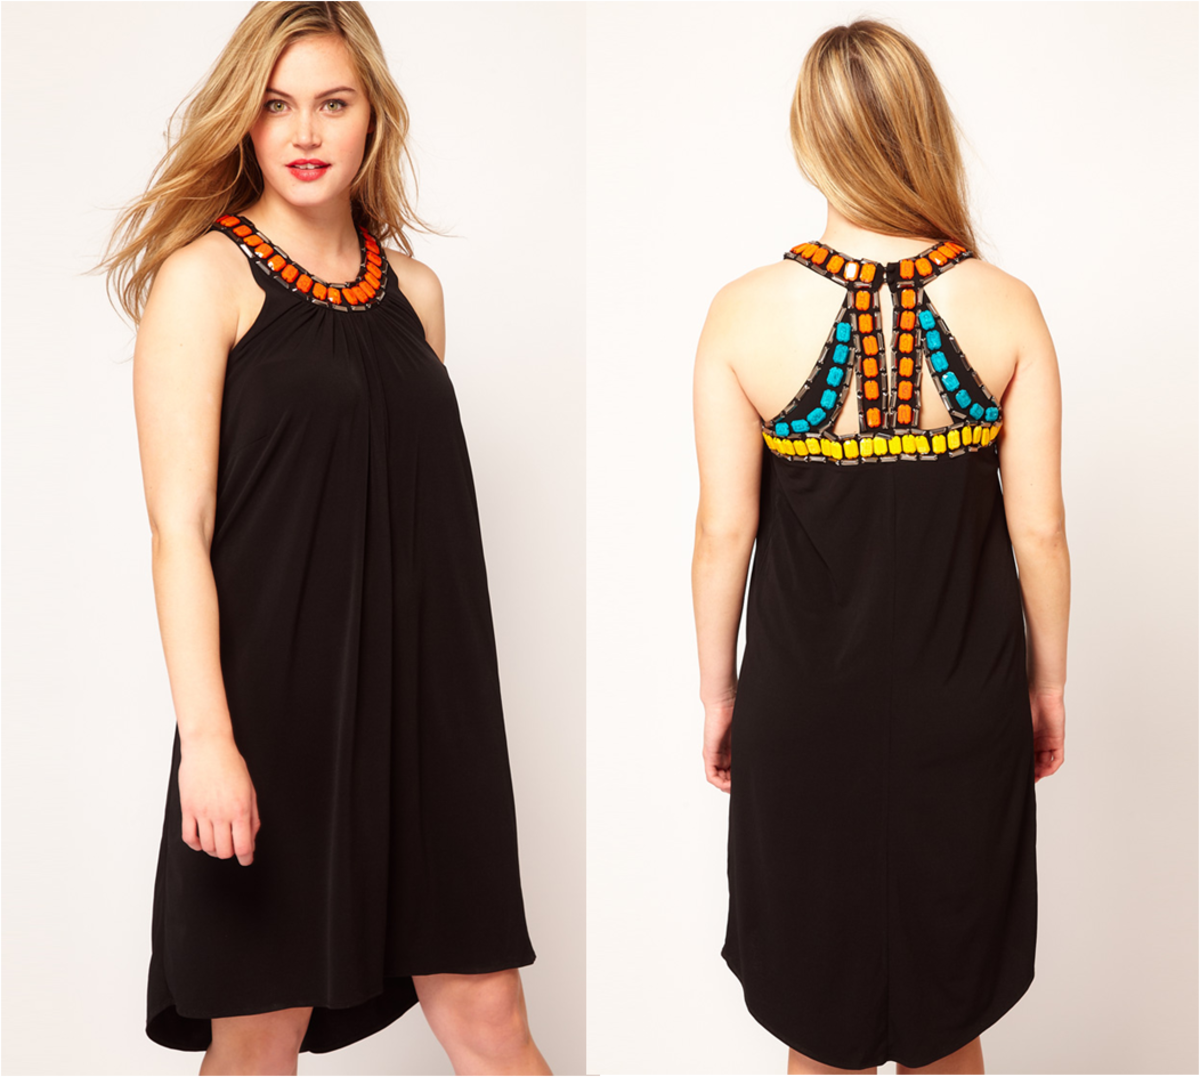 relaxed jersey sleeveless swing dress, scoop neckline with beaded embellishment, cutout back with an embellished beaded trim and a dipped reverse hem